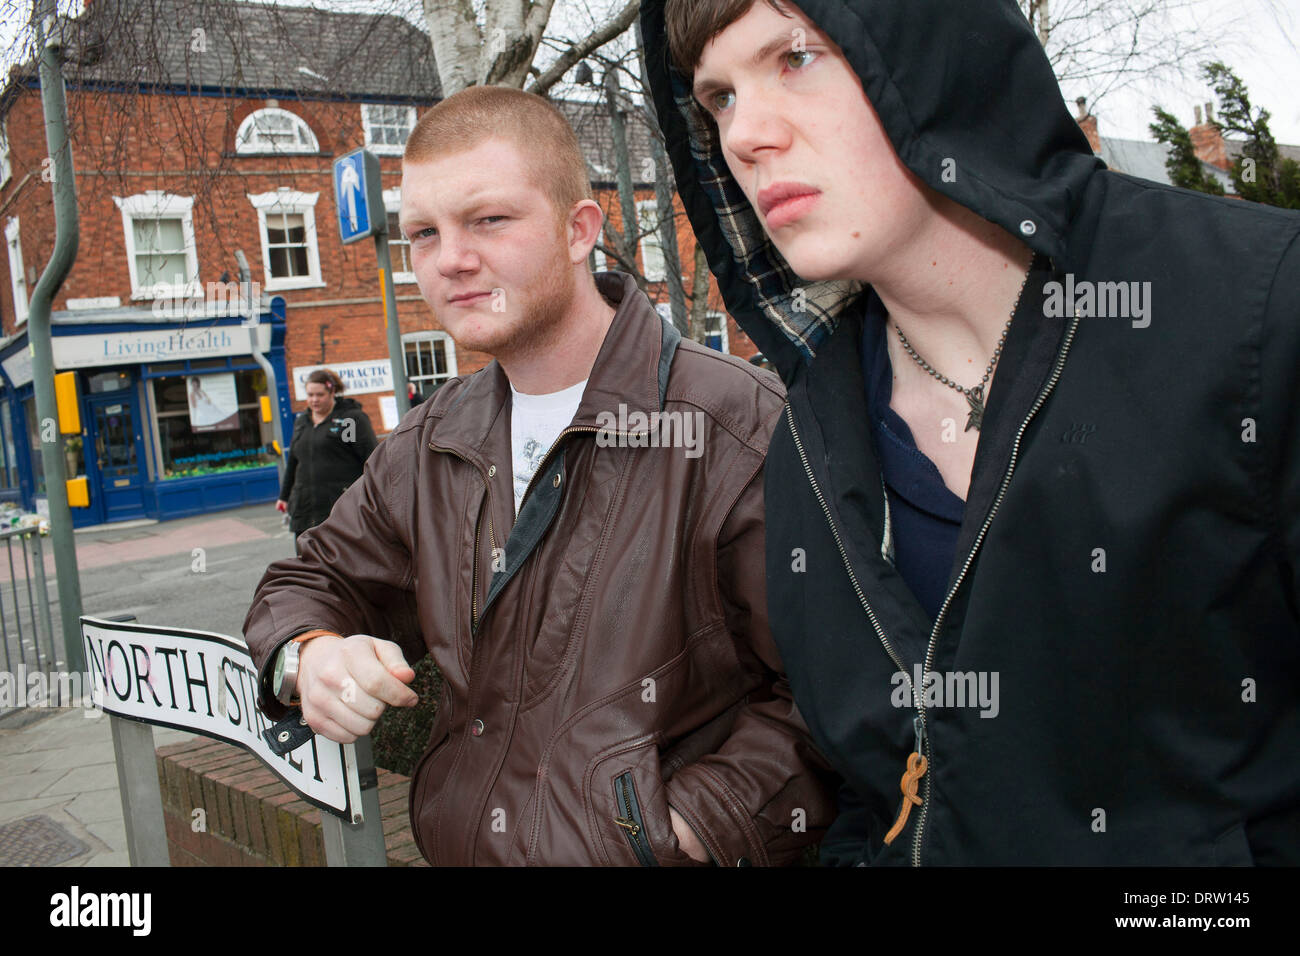 Two men in their early 20's on a street corner in the town of Grantham. - Stock Image